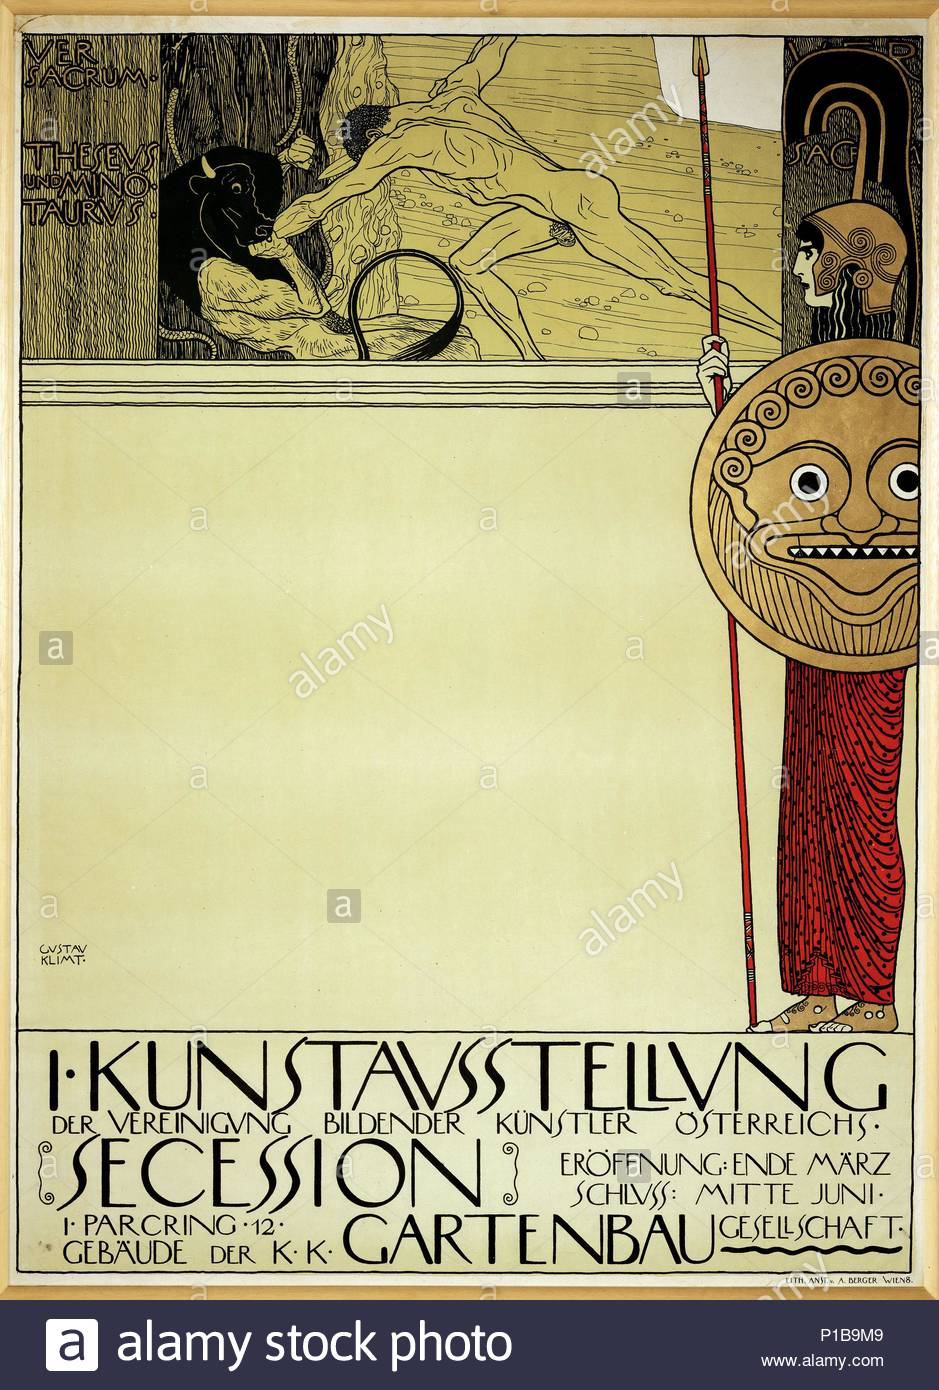 """Poster for the first exhibition of the """" Secession"""", the new artists' group which seceded from the group of Kuenstlerhaus-artists in 1897. This first print-run of the poster was censored and the second version had some trees cover Theseus' genitals (14-17-05 / 62). Author: Gustav Klimt (1862-1918). Location: Wien Museum Karlsplatz, Vienna, Austria. - Stock Image"""